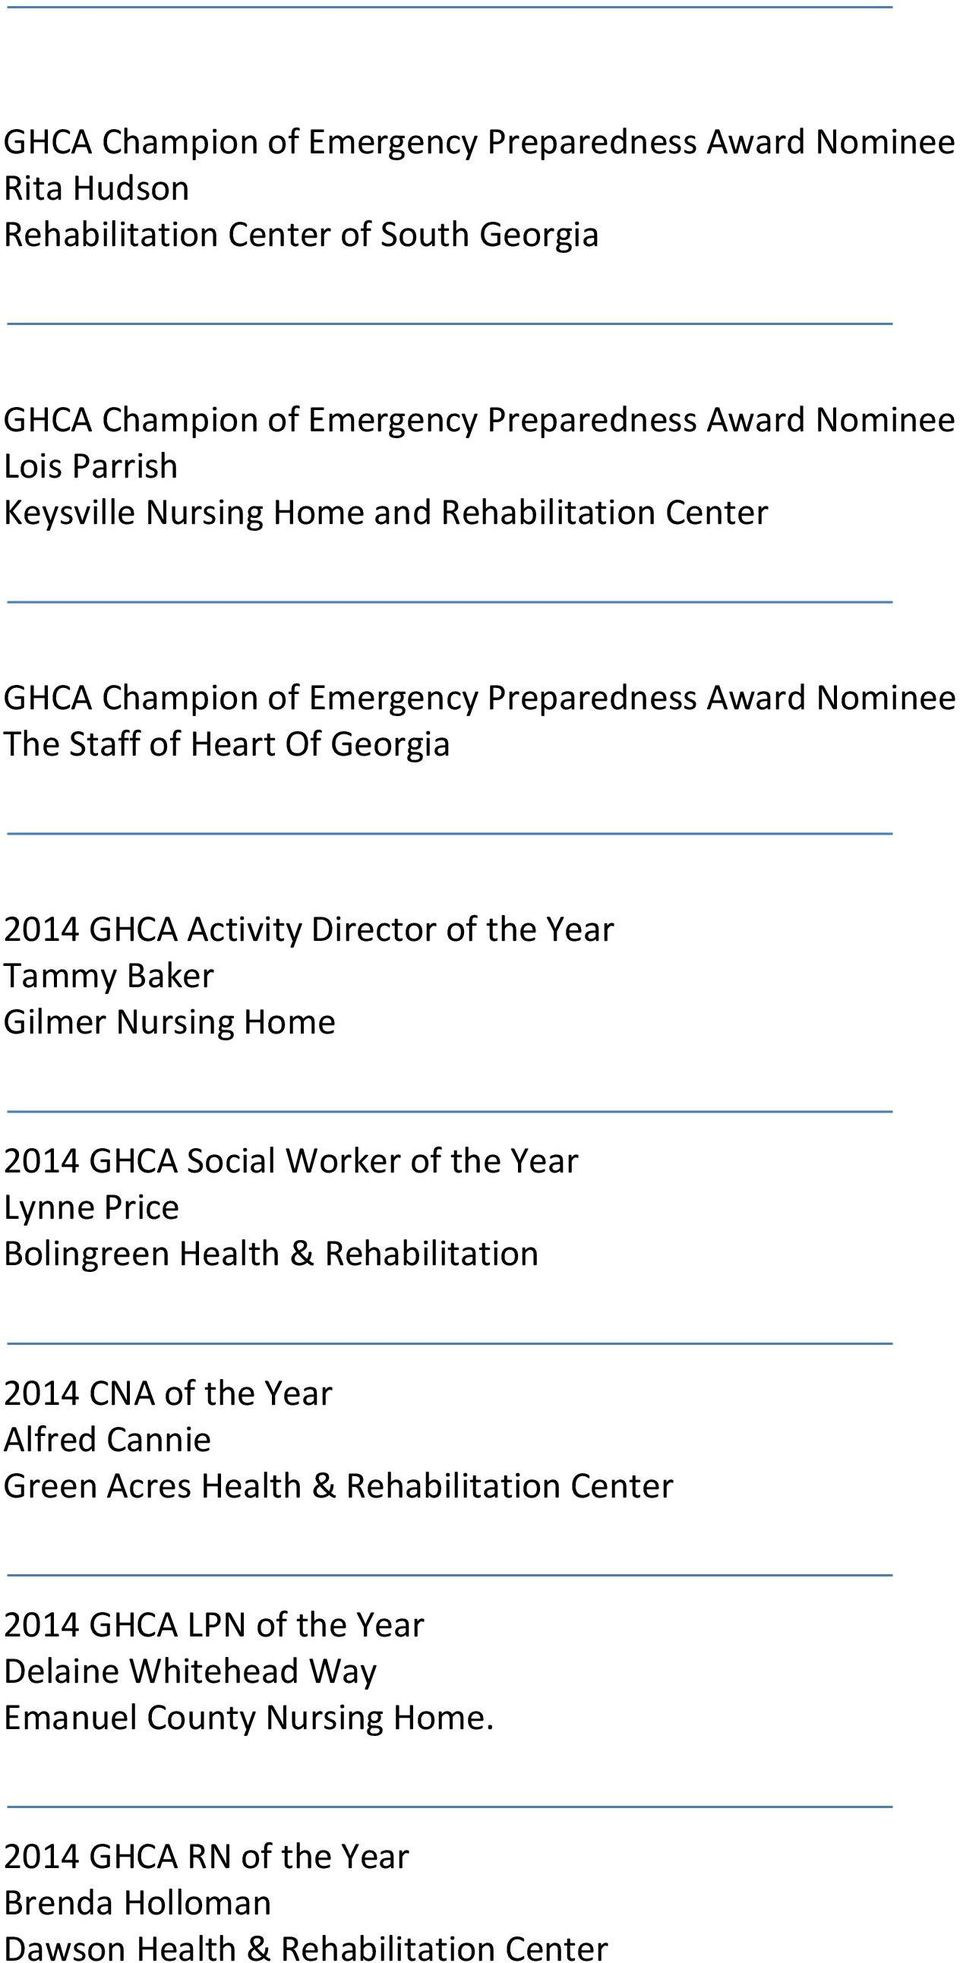 Ghca Champion Of Emergency Preparedness Award Nominee Rita Hudson Rehabilitation Center Of South